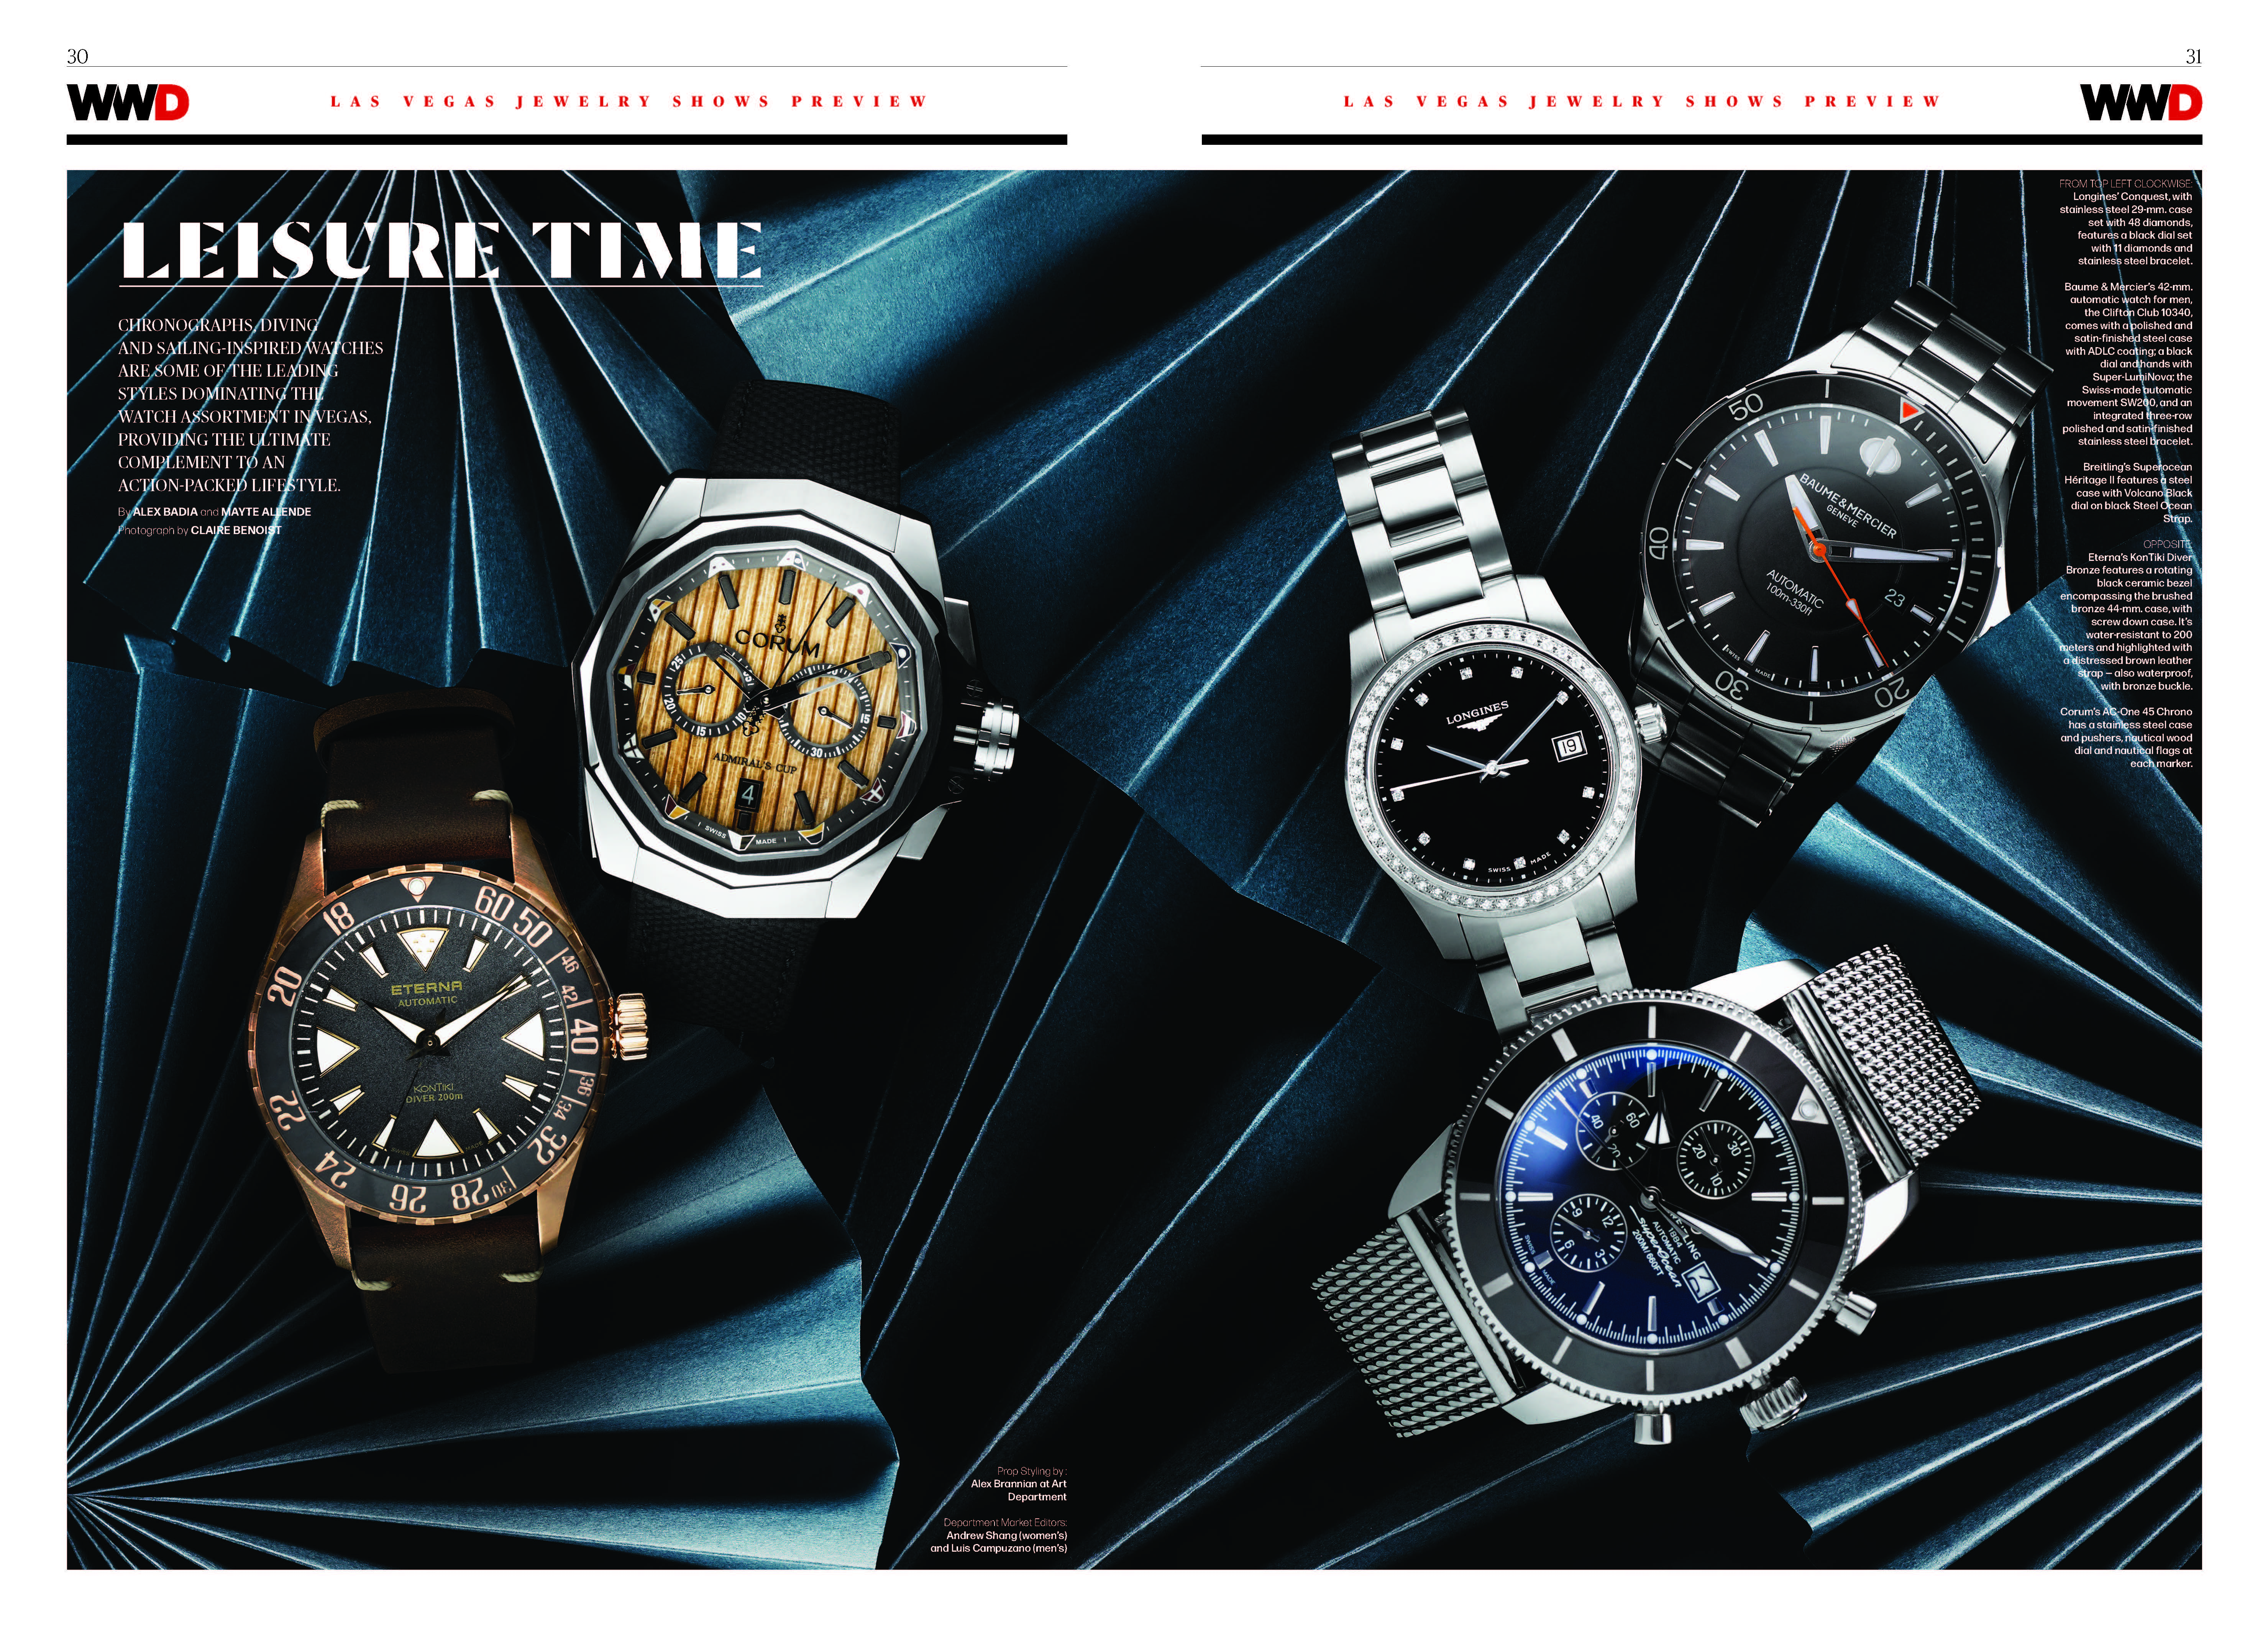 WATCHES AND JEWERLY_WWD_JCK_23_31_Page_5